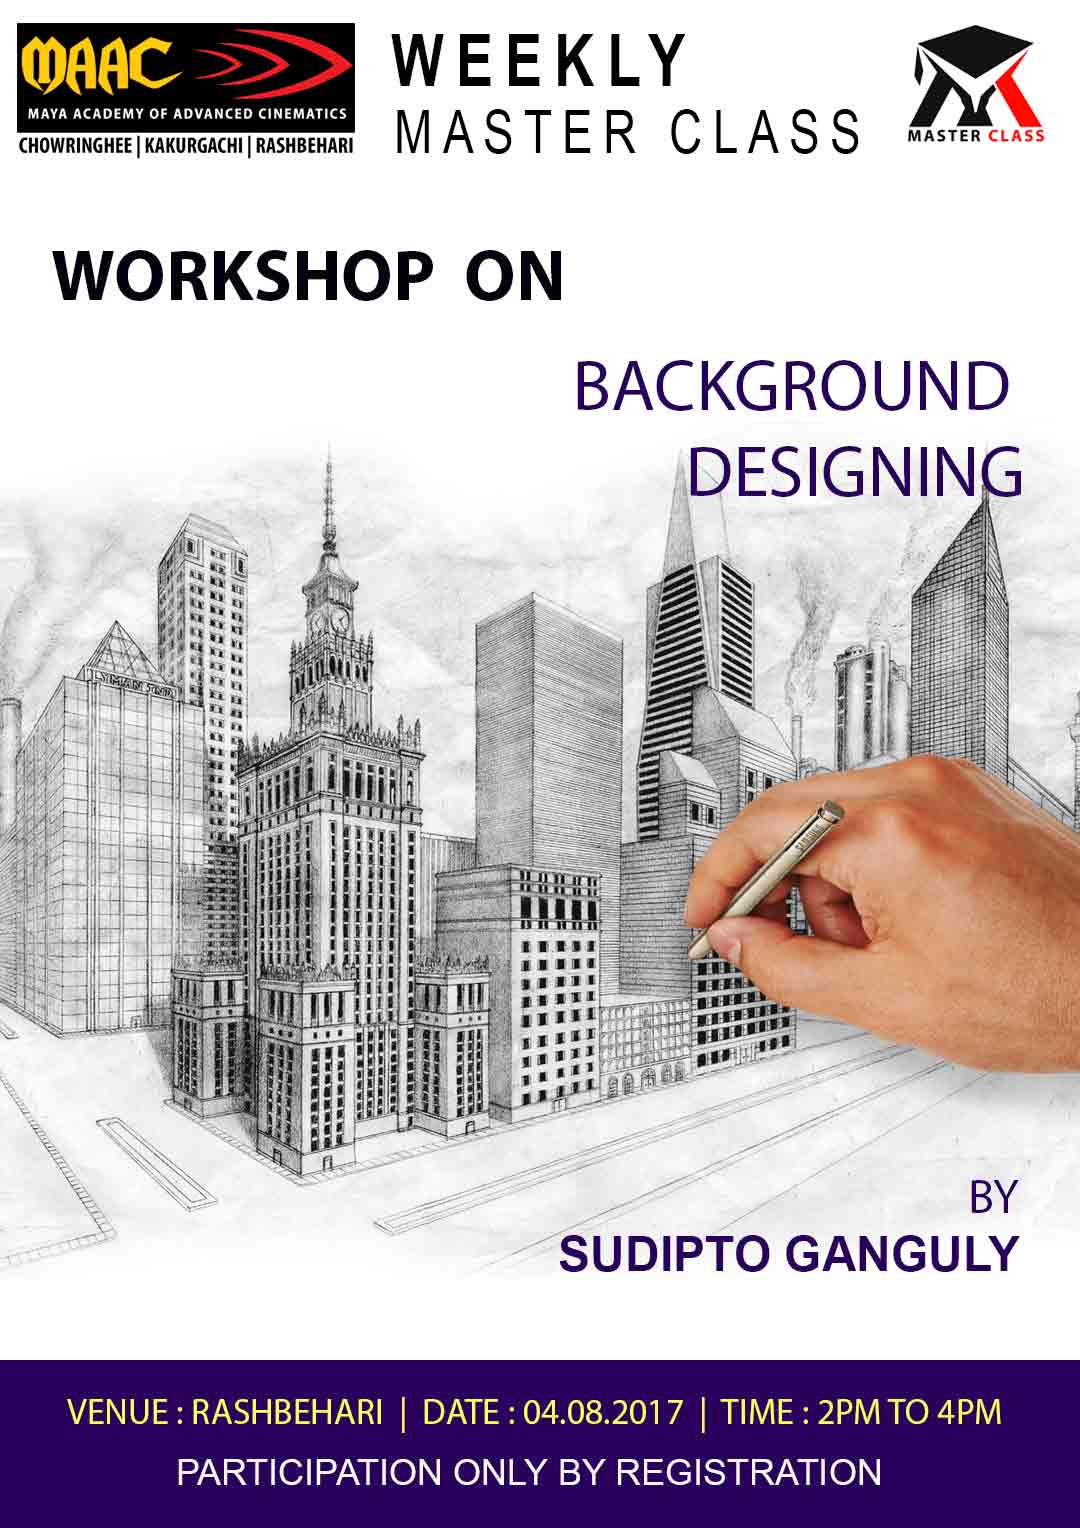 Weekly Master Class on Background Designing - Sudipto Ganguly